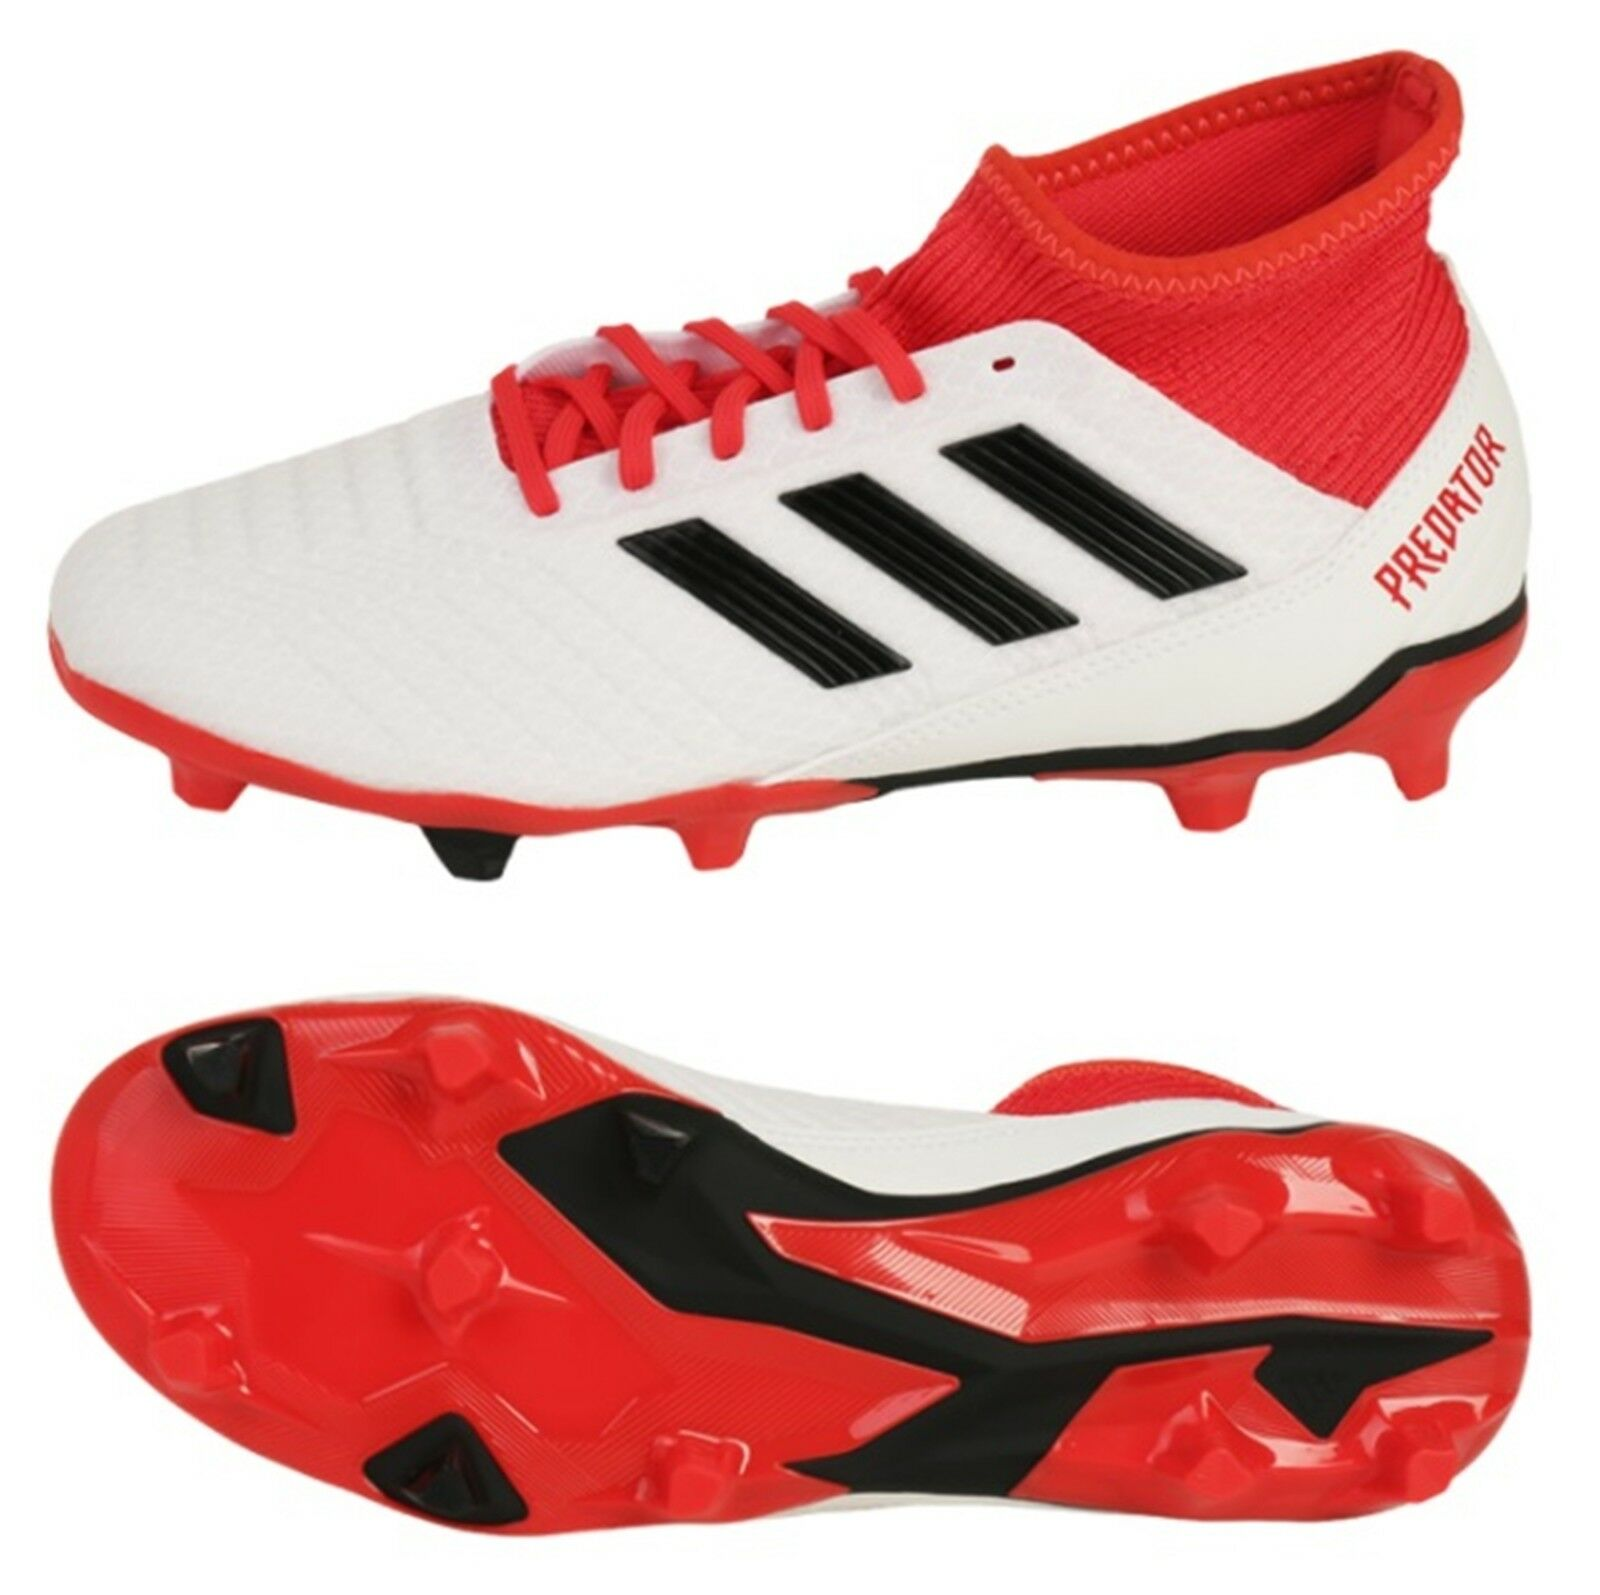 Adidas Men Predator 18.3 FG Cleats Soccer White Red Football shoes Spike CM7667